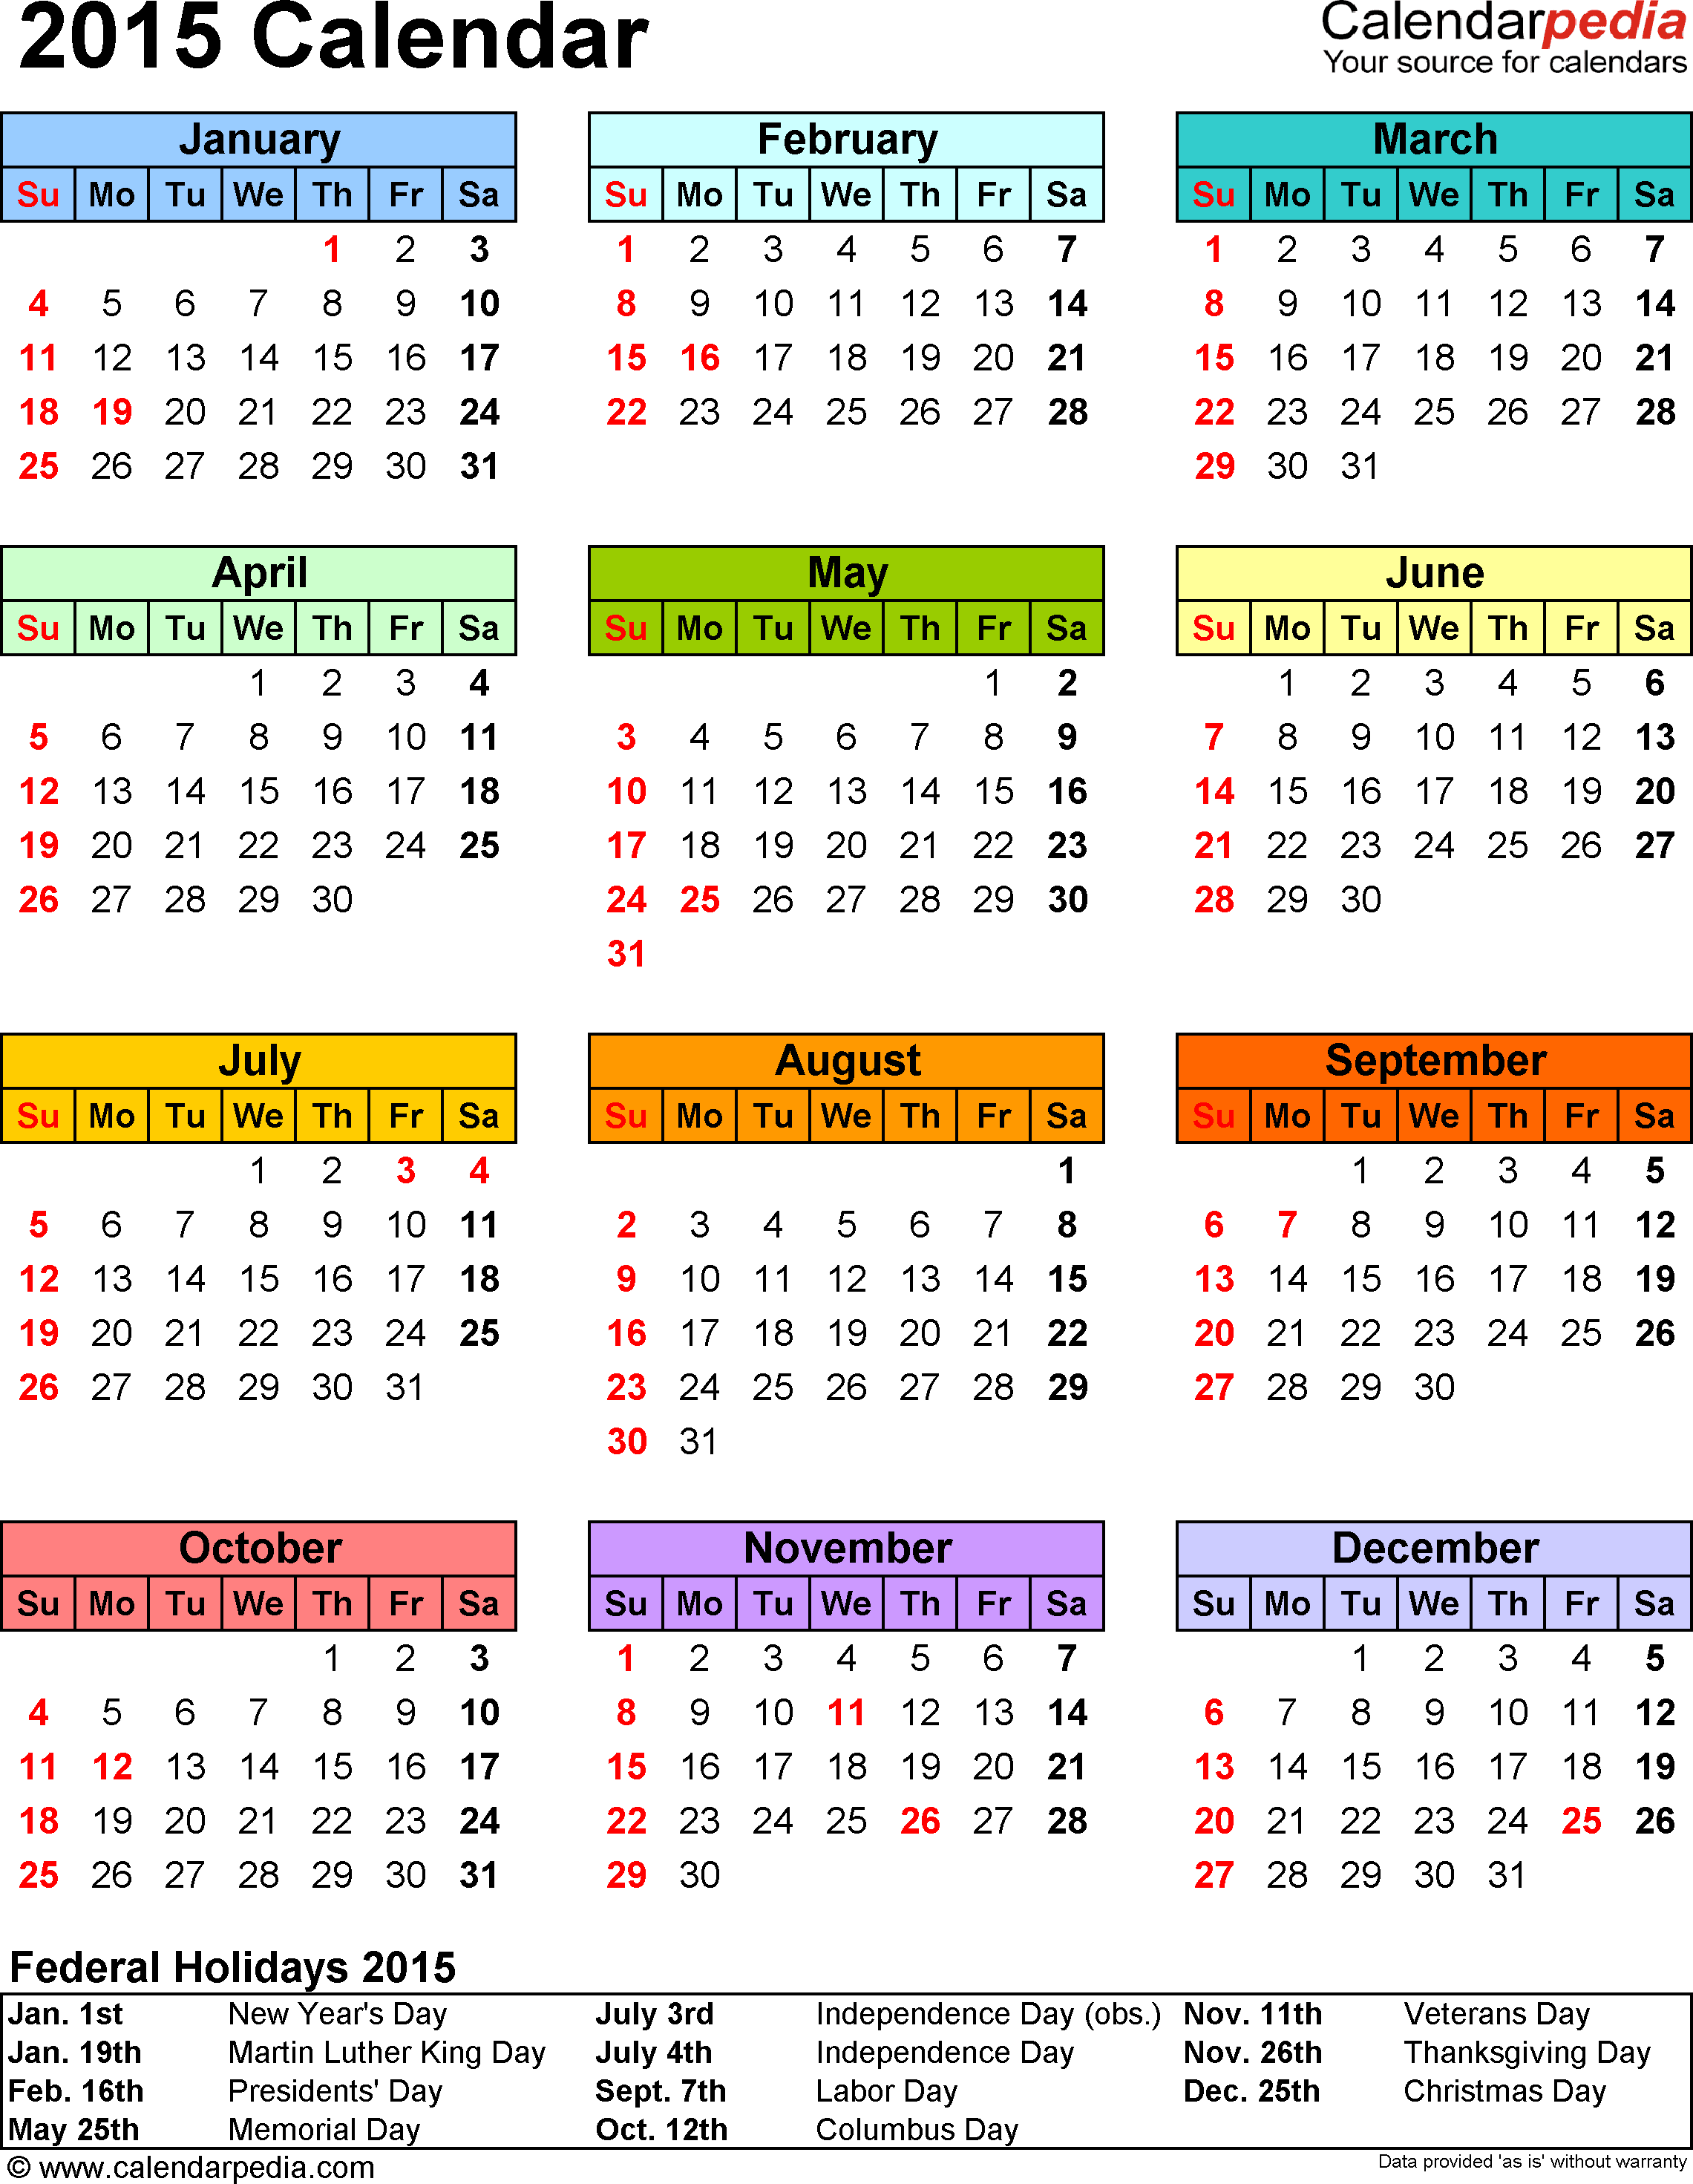 2015 Calendar Excel - Download 16 free printable templates (.xls)